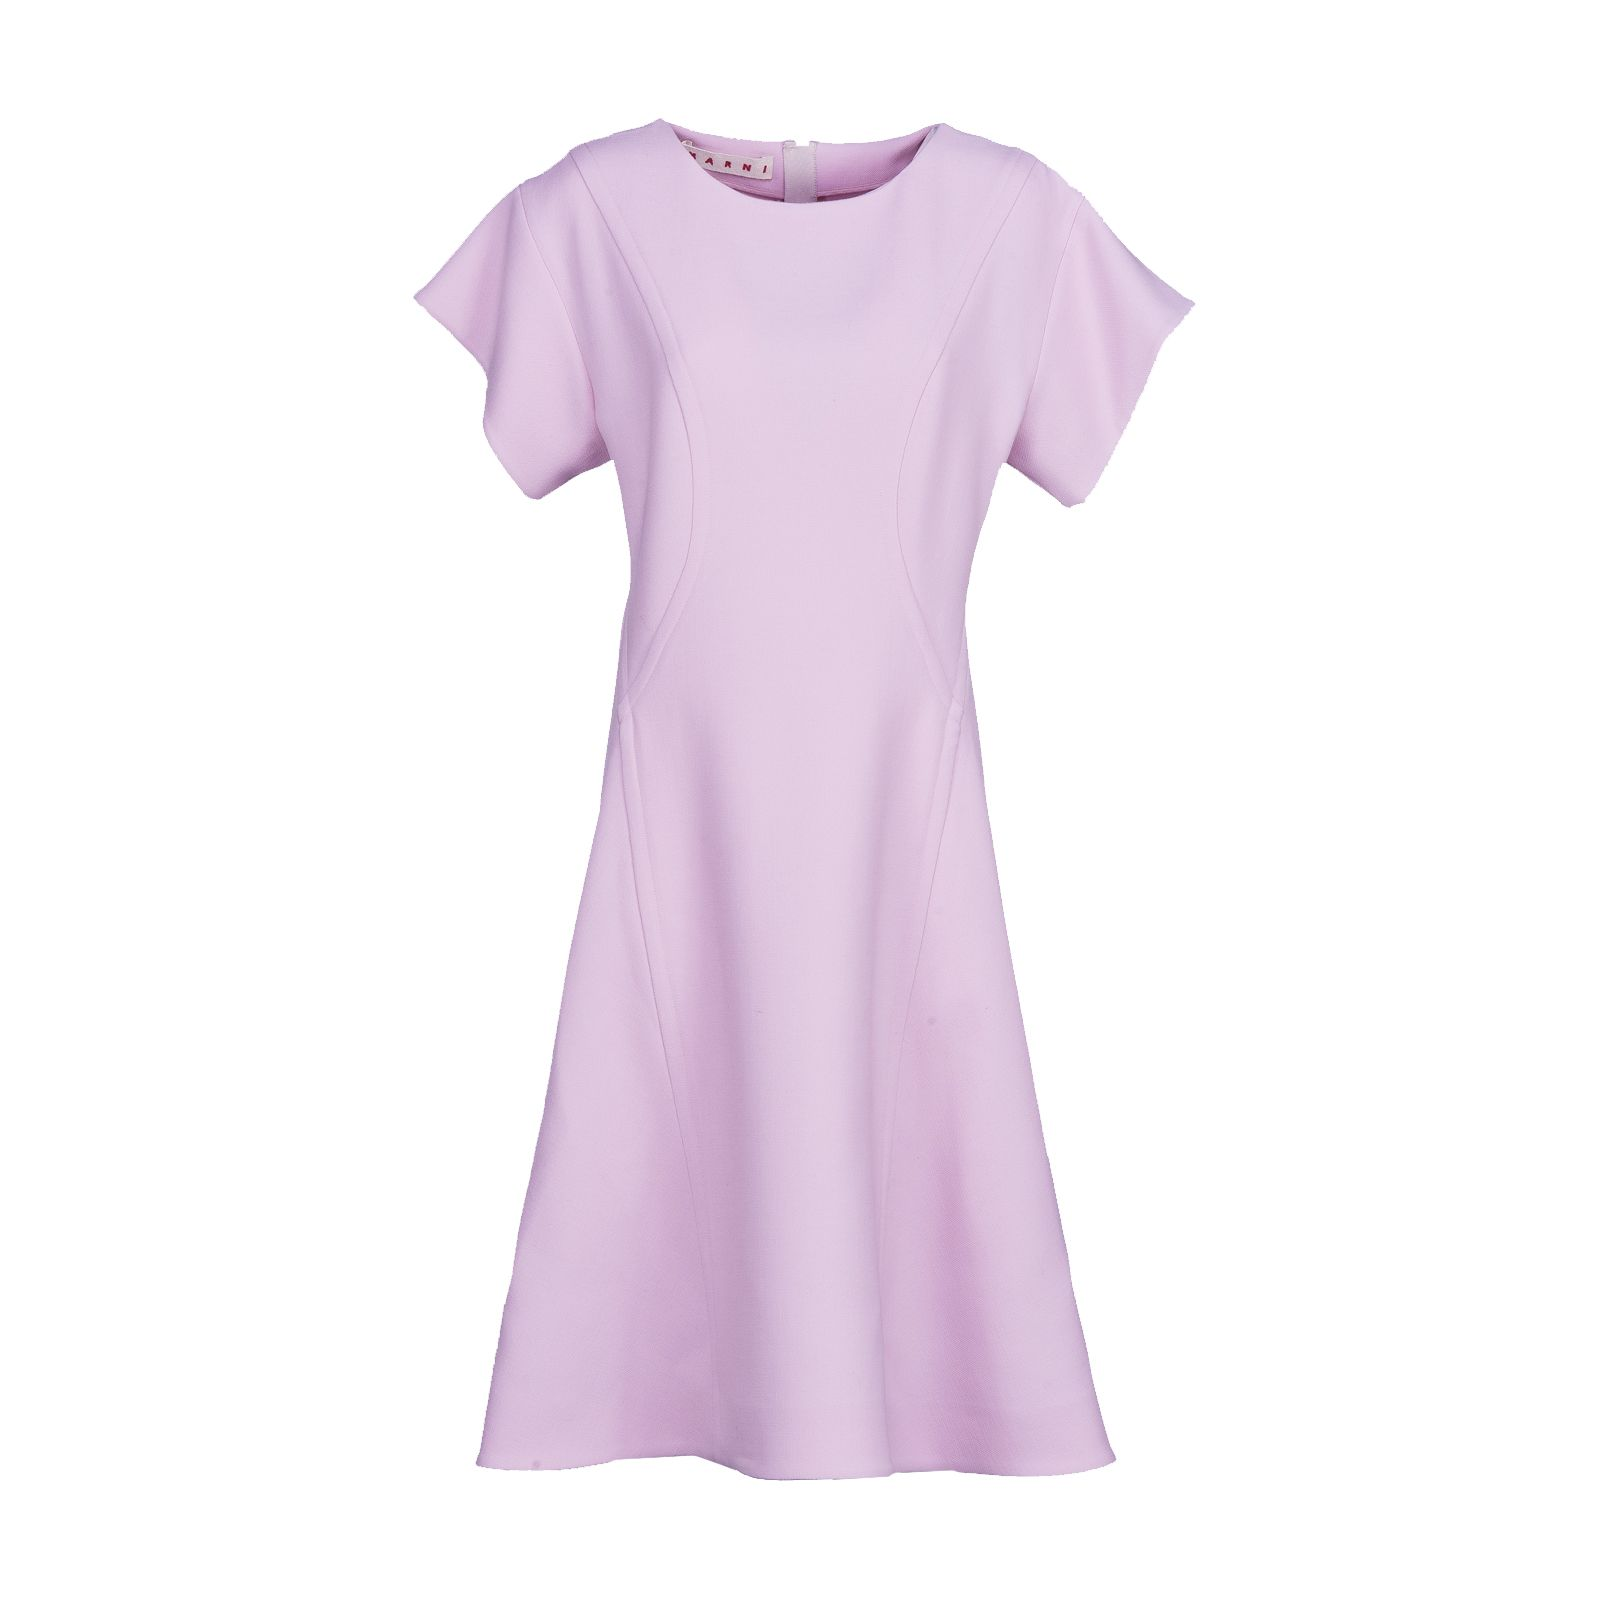 Real For Sale Cheap Limited Edition short-sleeved flared dress - Pink & Purple Marni Free Shipping Shopping Online xOHVJI0uPQ